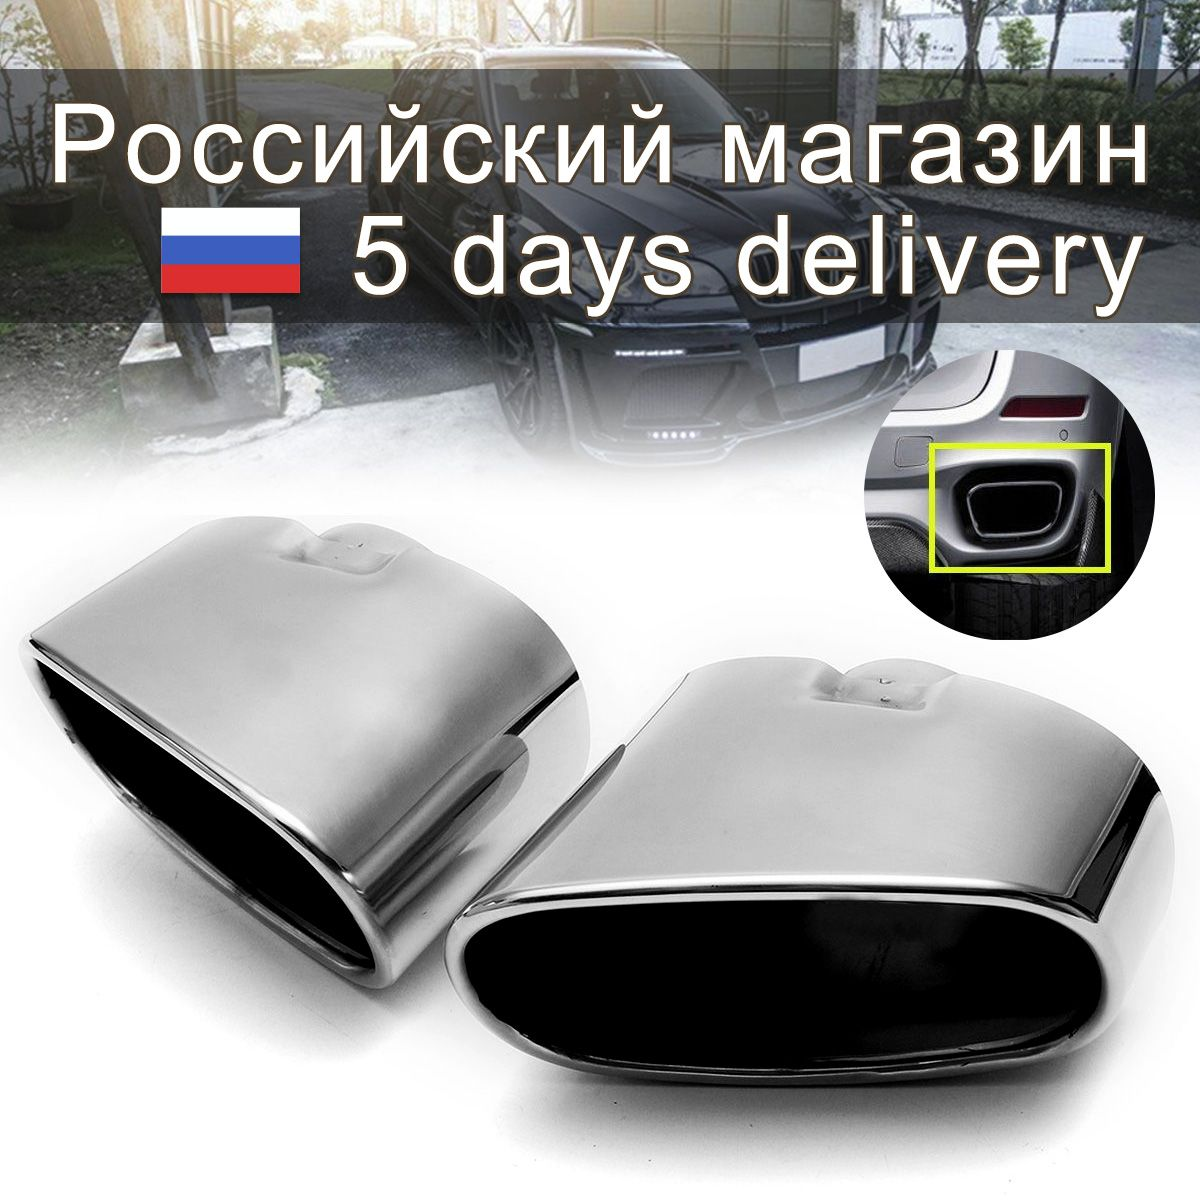 Pair Chrome Exhaust Dual Tail Pipe Muffler Tip Stainless Steel For BMW X5 E70 2000 2001 2002 2003 2004 2005 2006 2007 to 2016